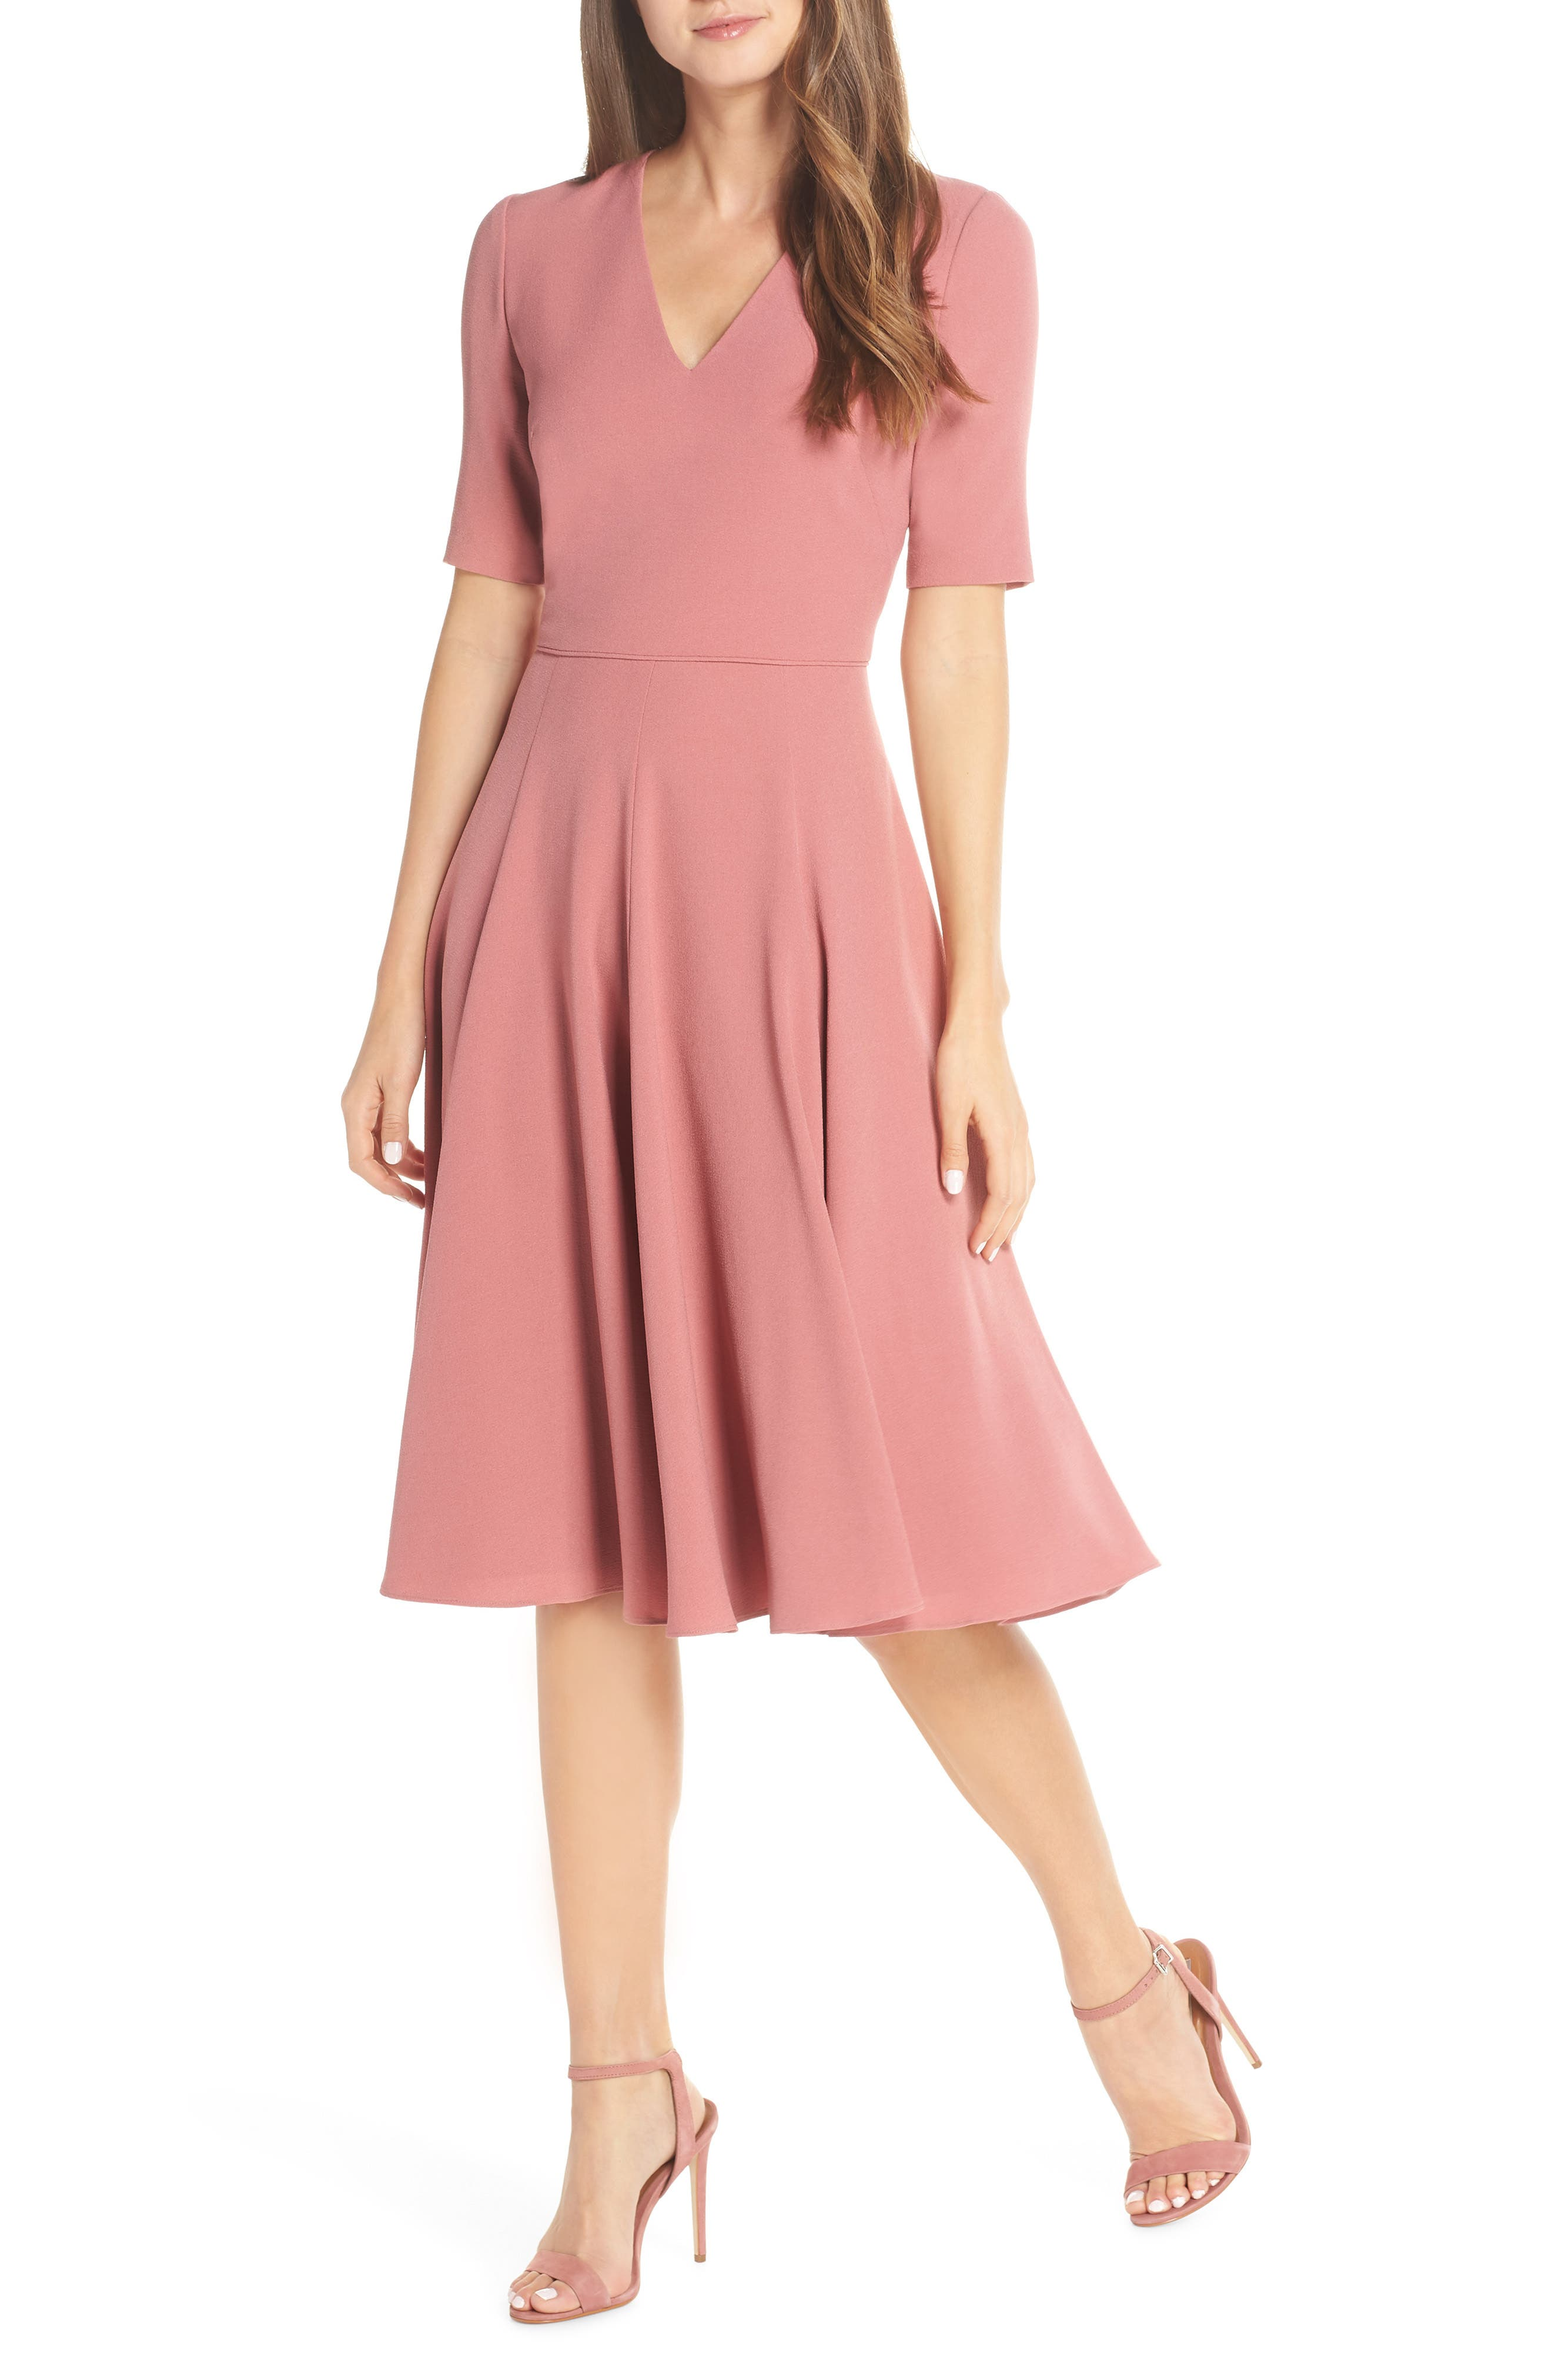 Gal Meets Glam Collection Edith City Crepe Fit & Flare Midi Dress, Pink (Nordstrom Exclusive)